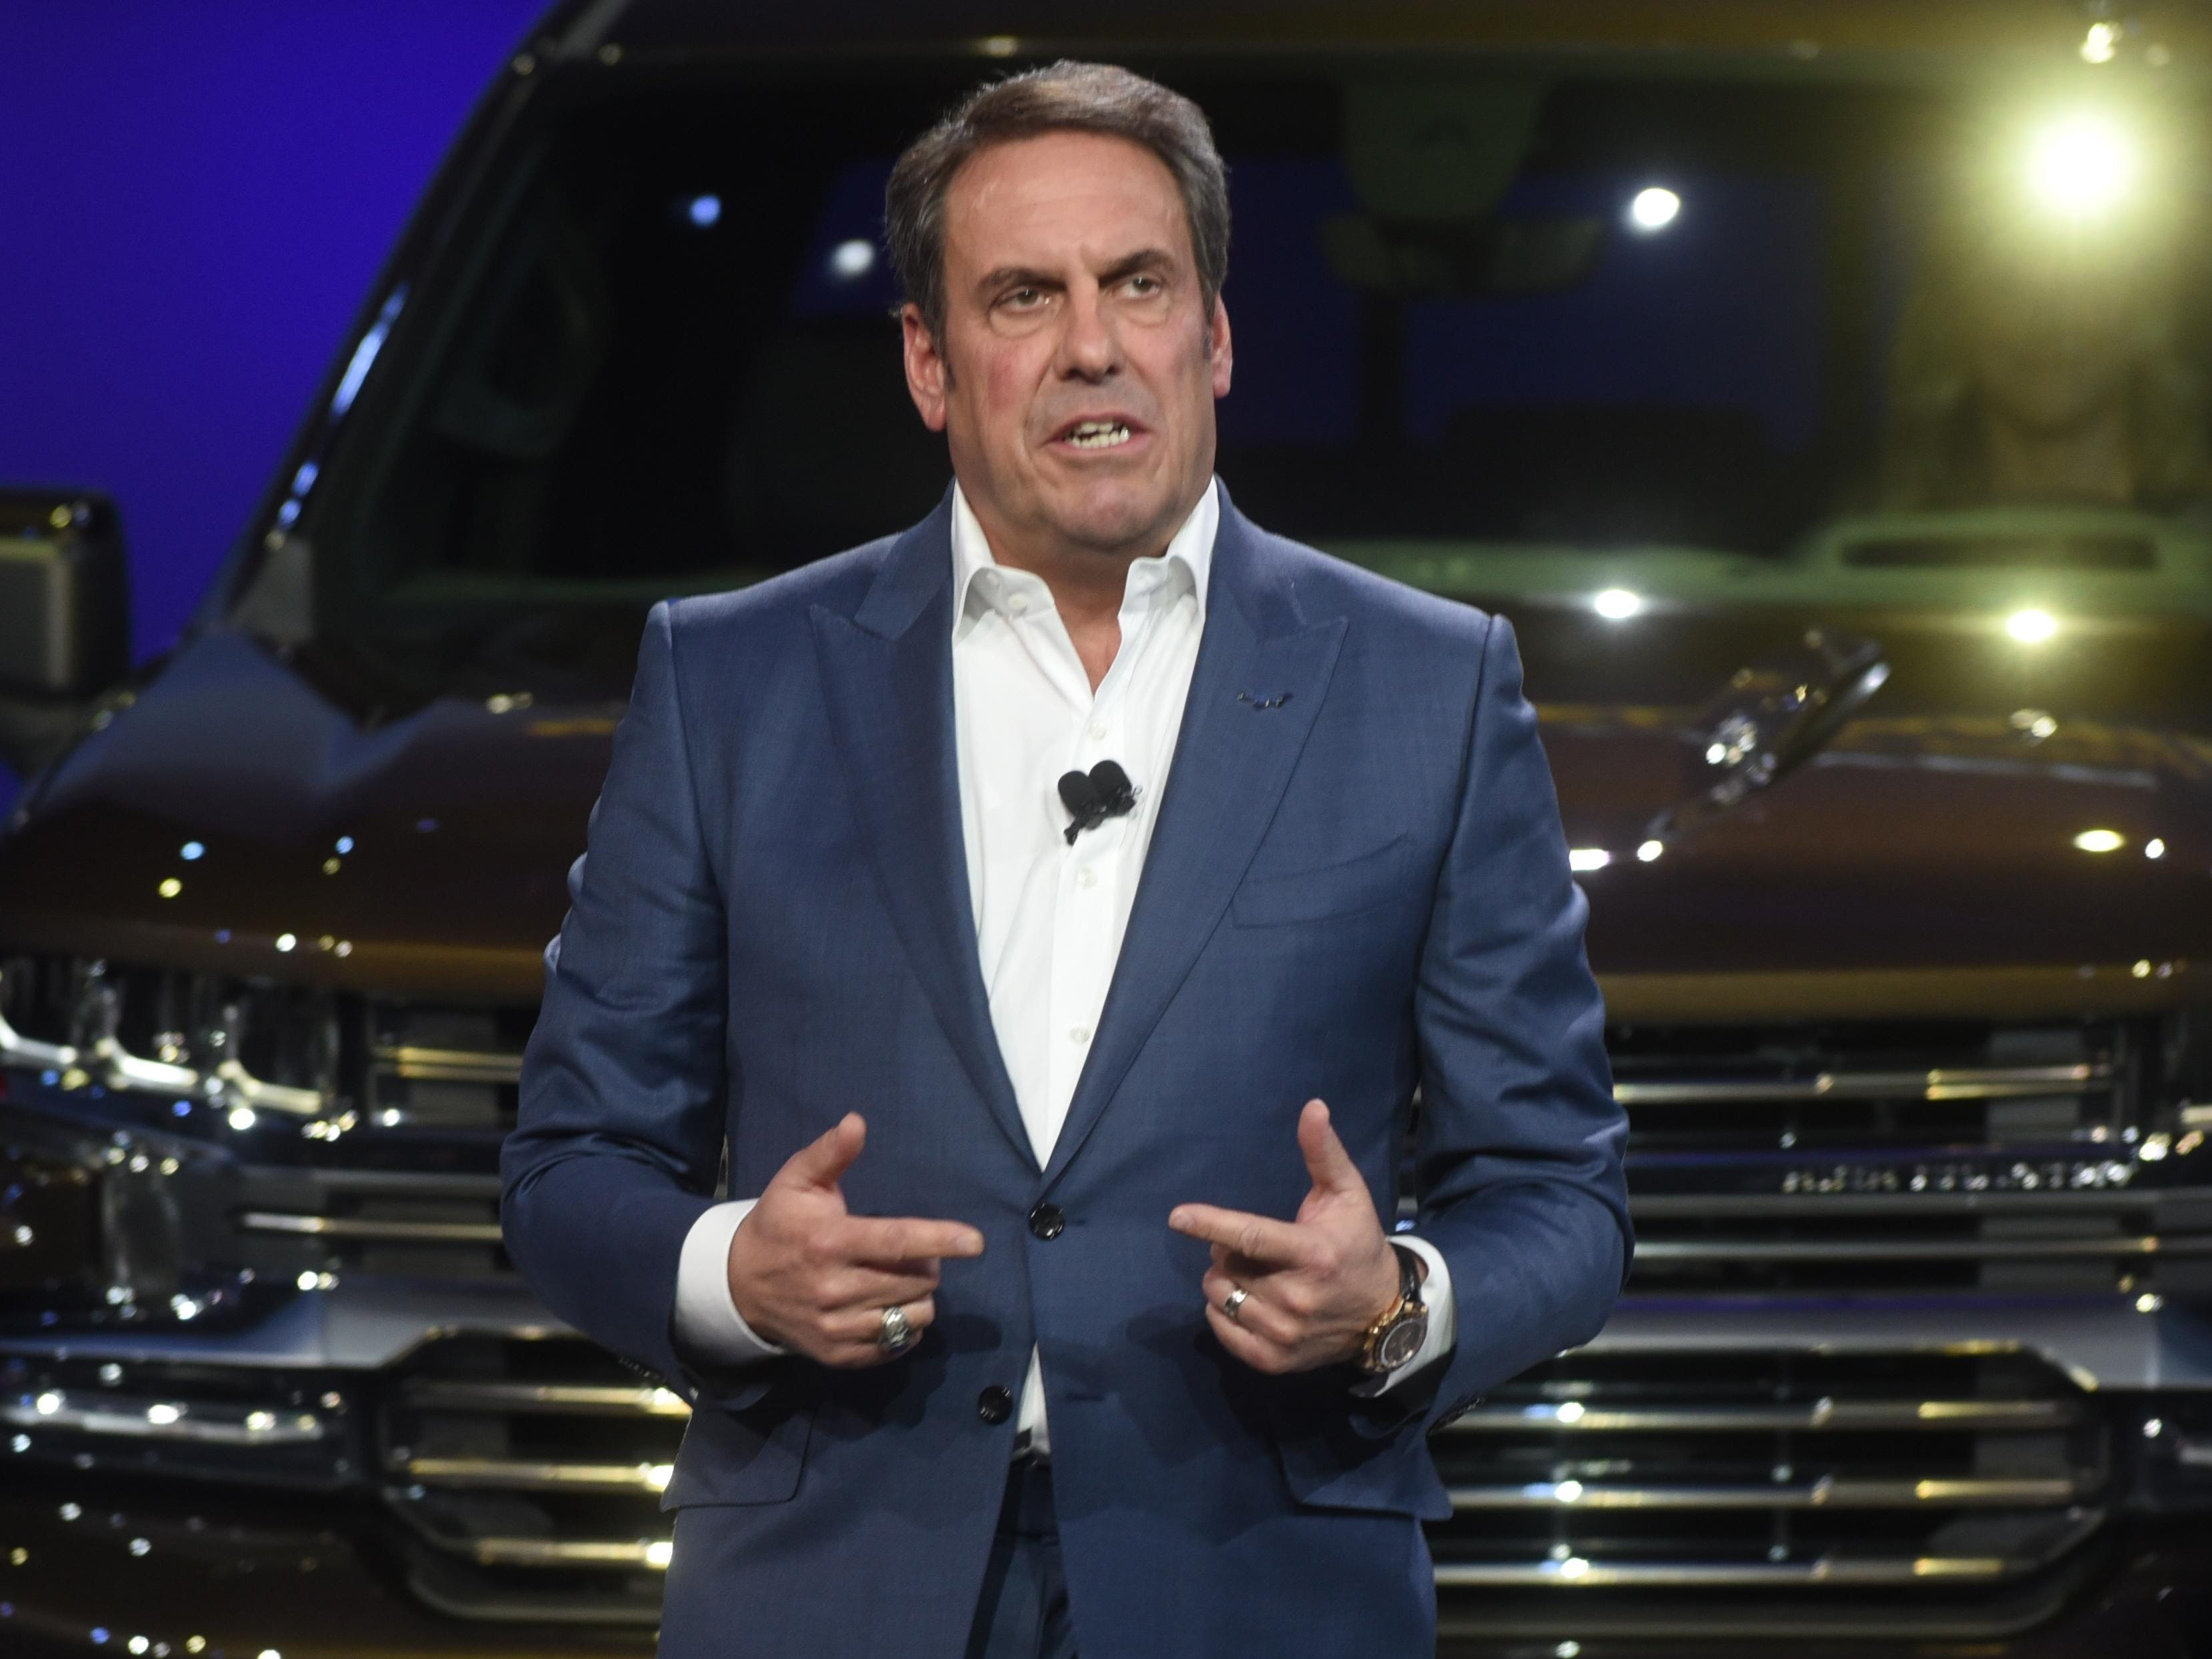 Howes: Legacy leaves GM's Reuss with something to prove